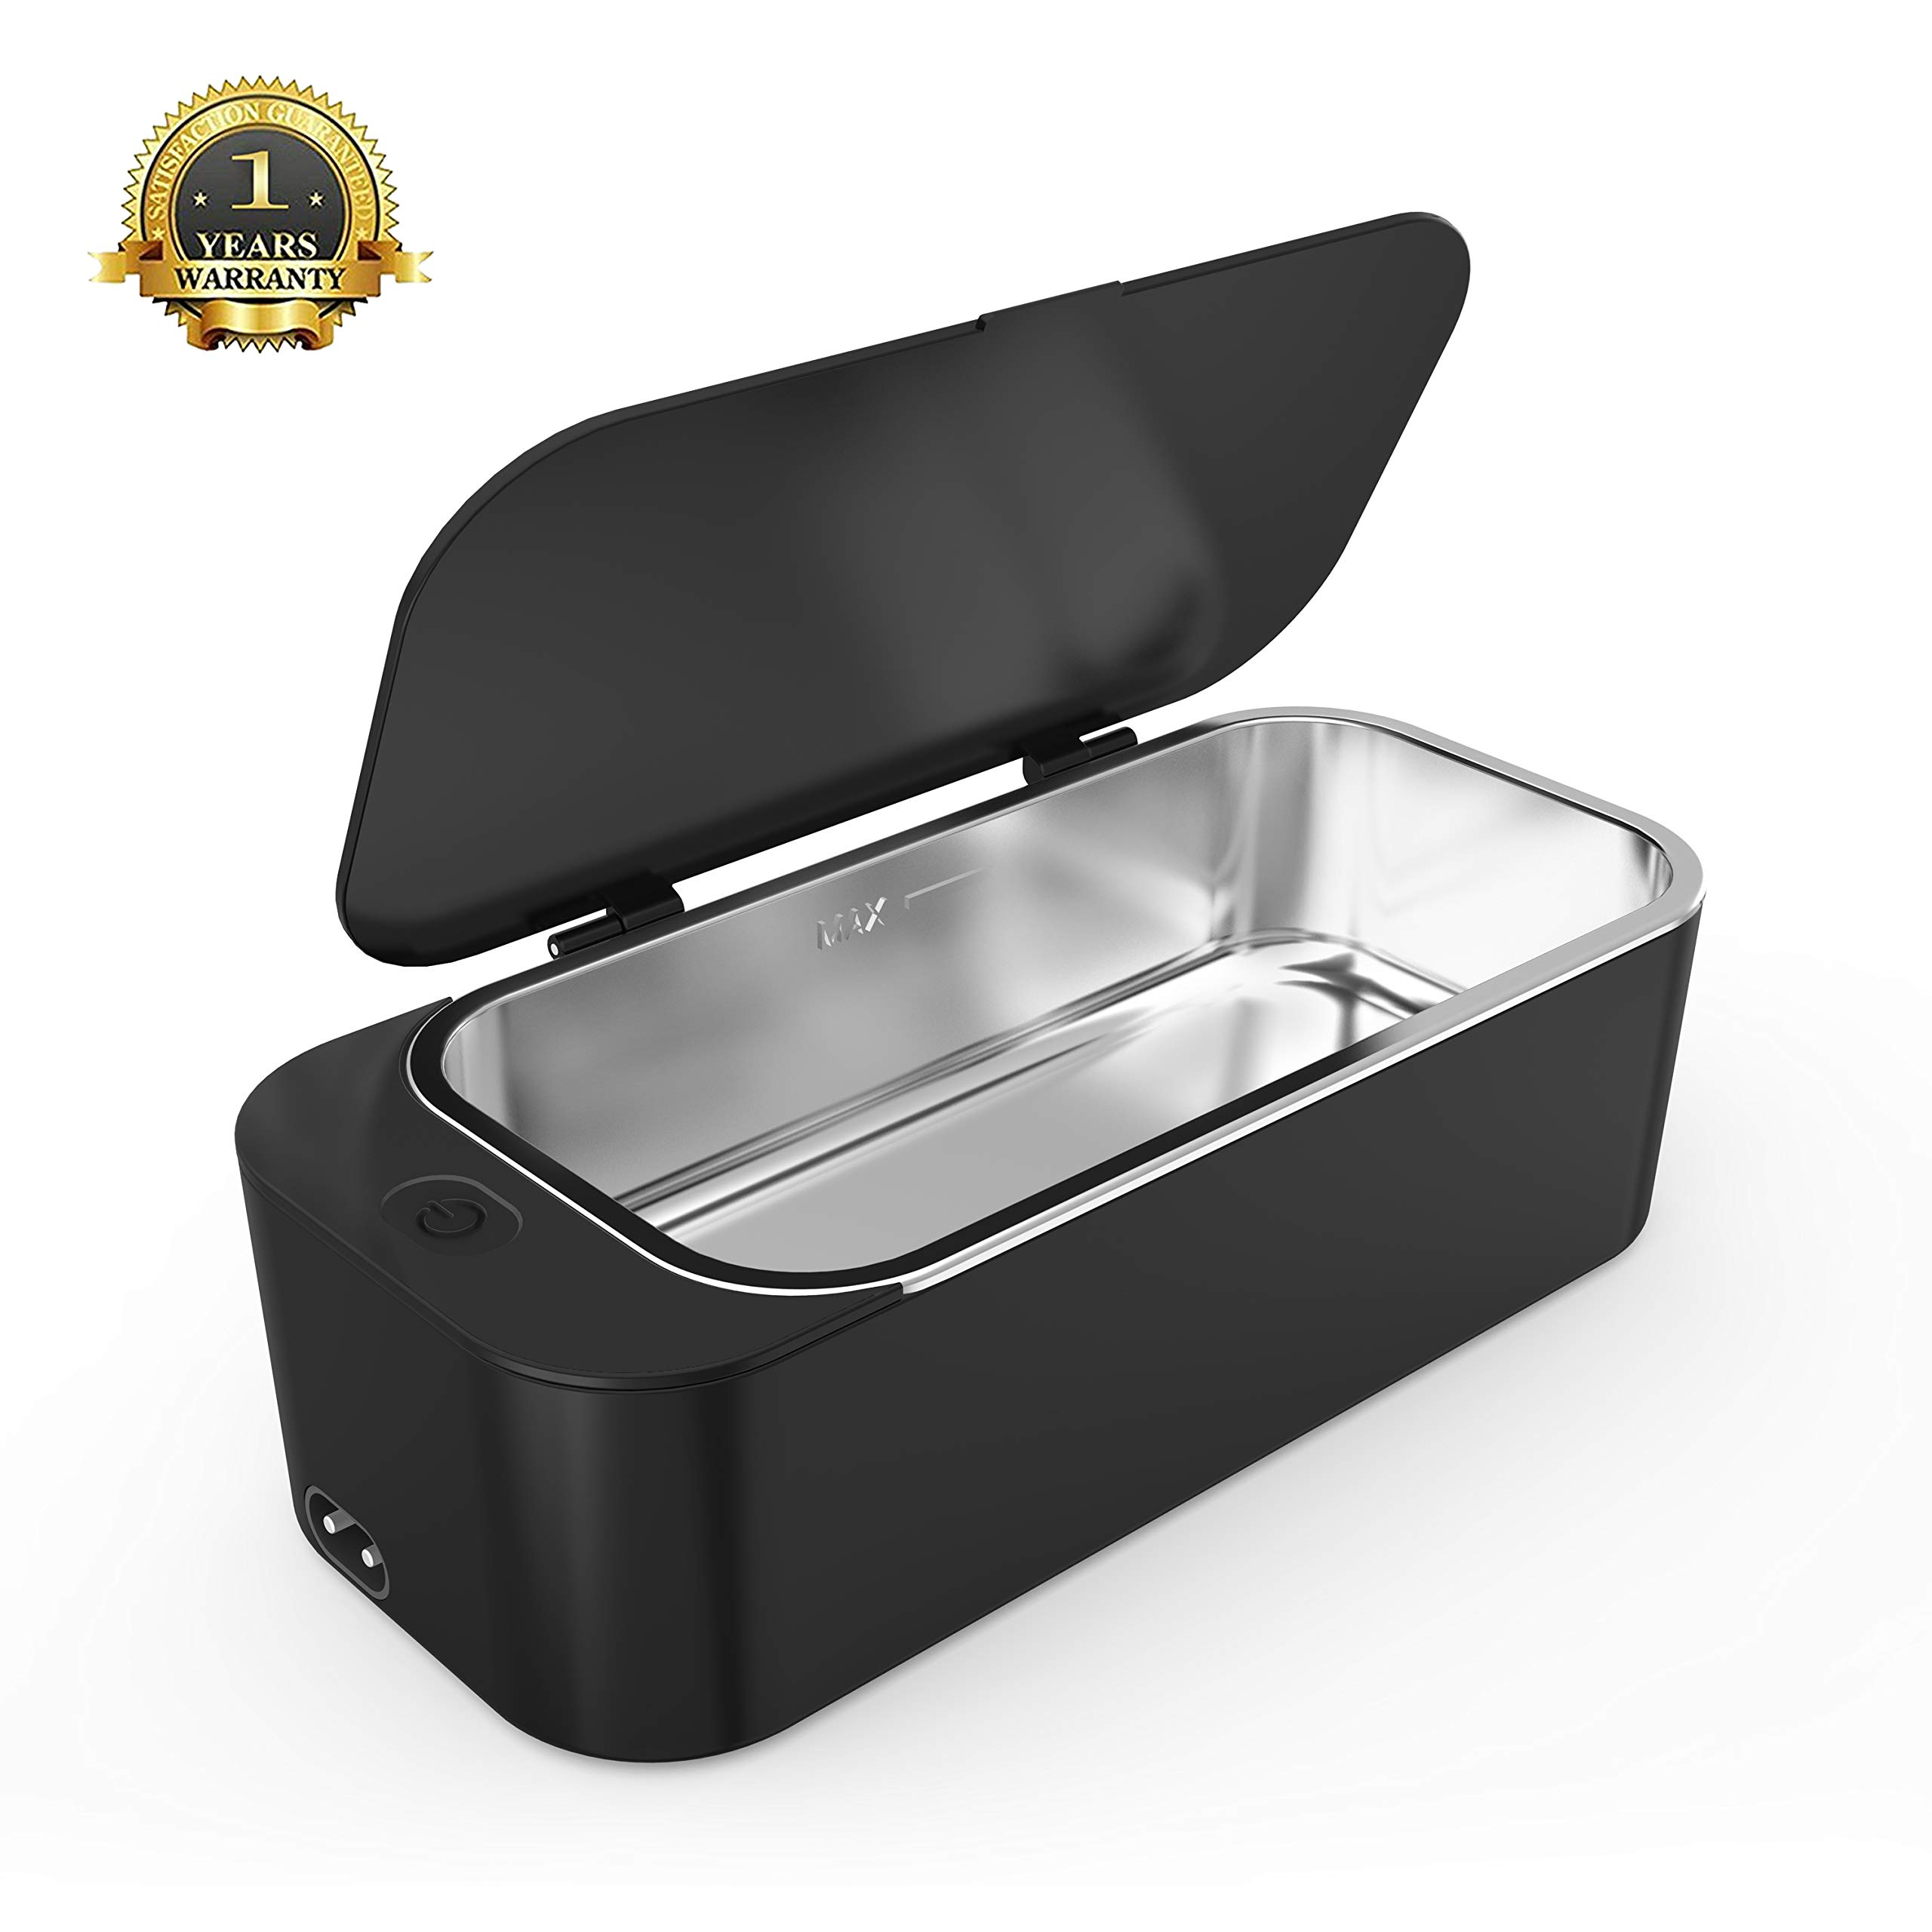 Ultrasonic Jewelry Cleaner Professional Ultrasonic Machine for Rings Watches Denture Eyeglasses Coins Razors with 450ml by Homblze